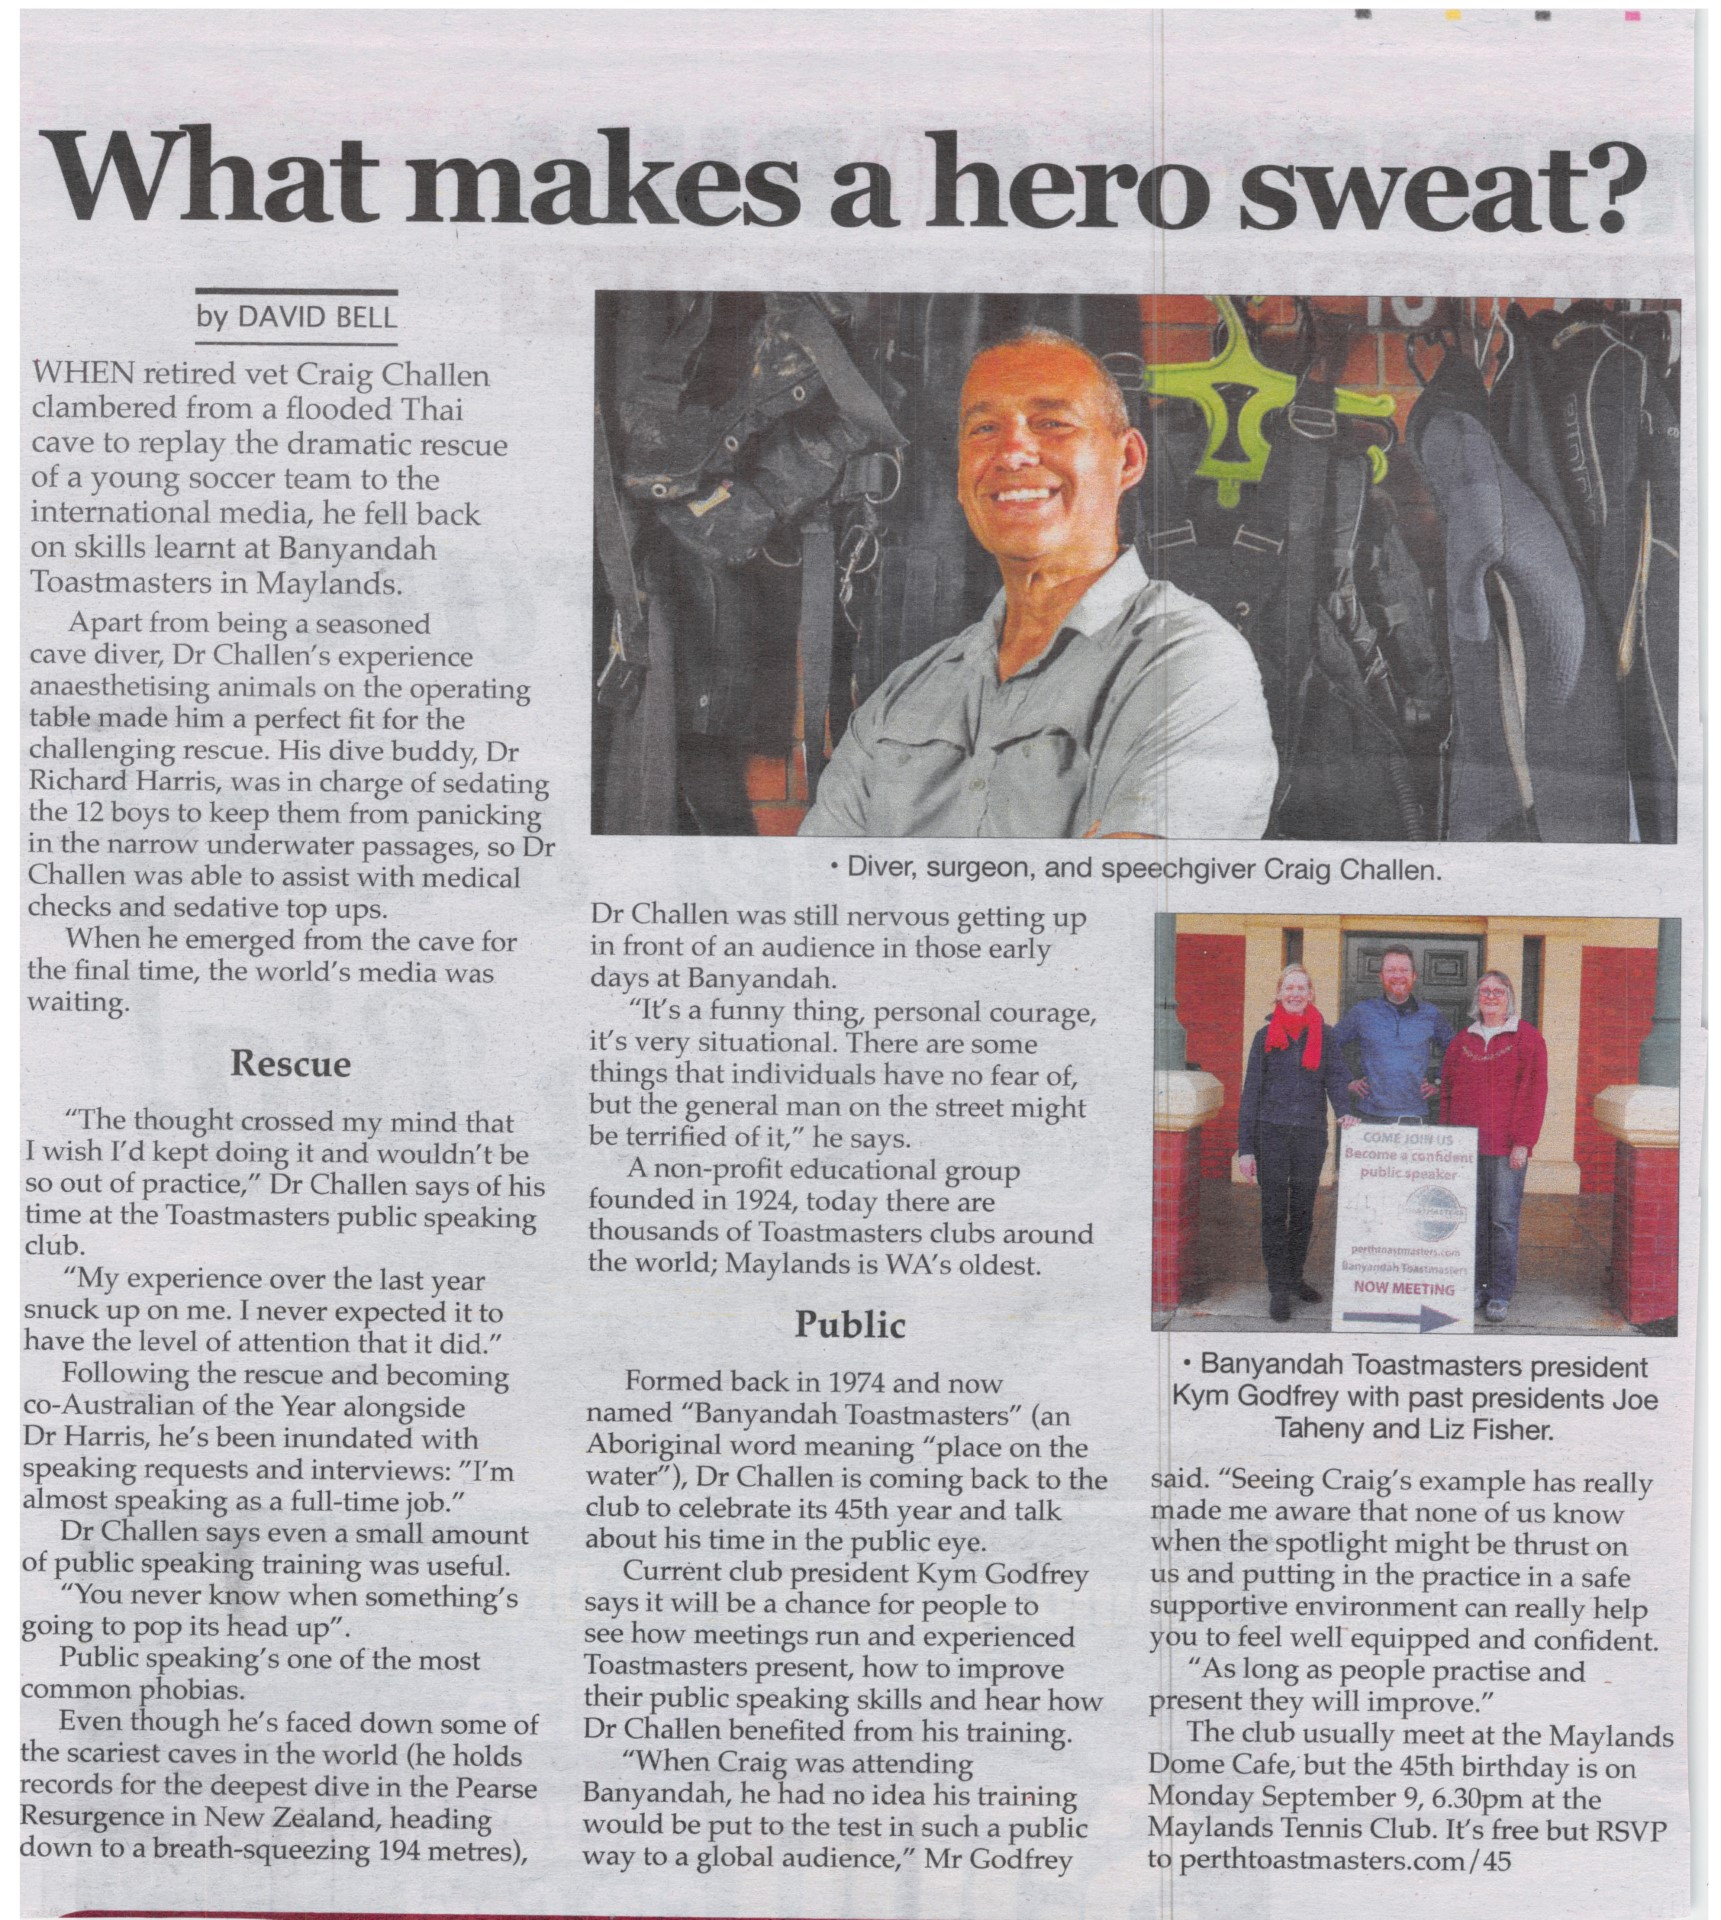 What Makes a Hero Sweat - Perth Voice Newspaper Article about Craig Challen and Banyandah Toastmasters' 45th Celebrations